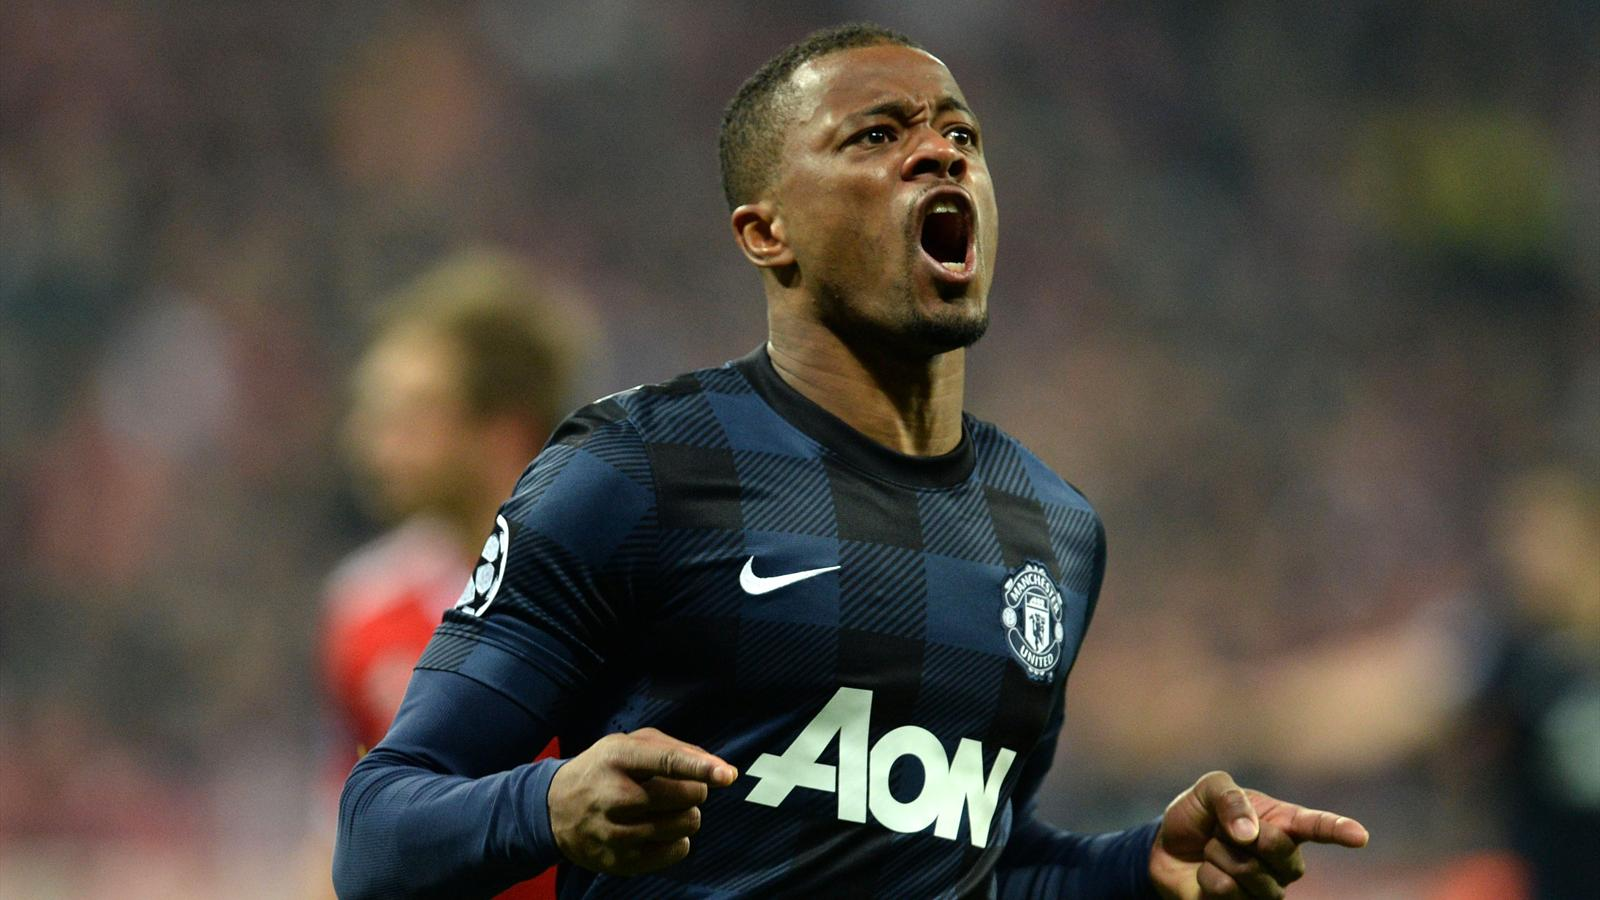 Evra Manchester United Bayern Munich Champions league